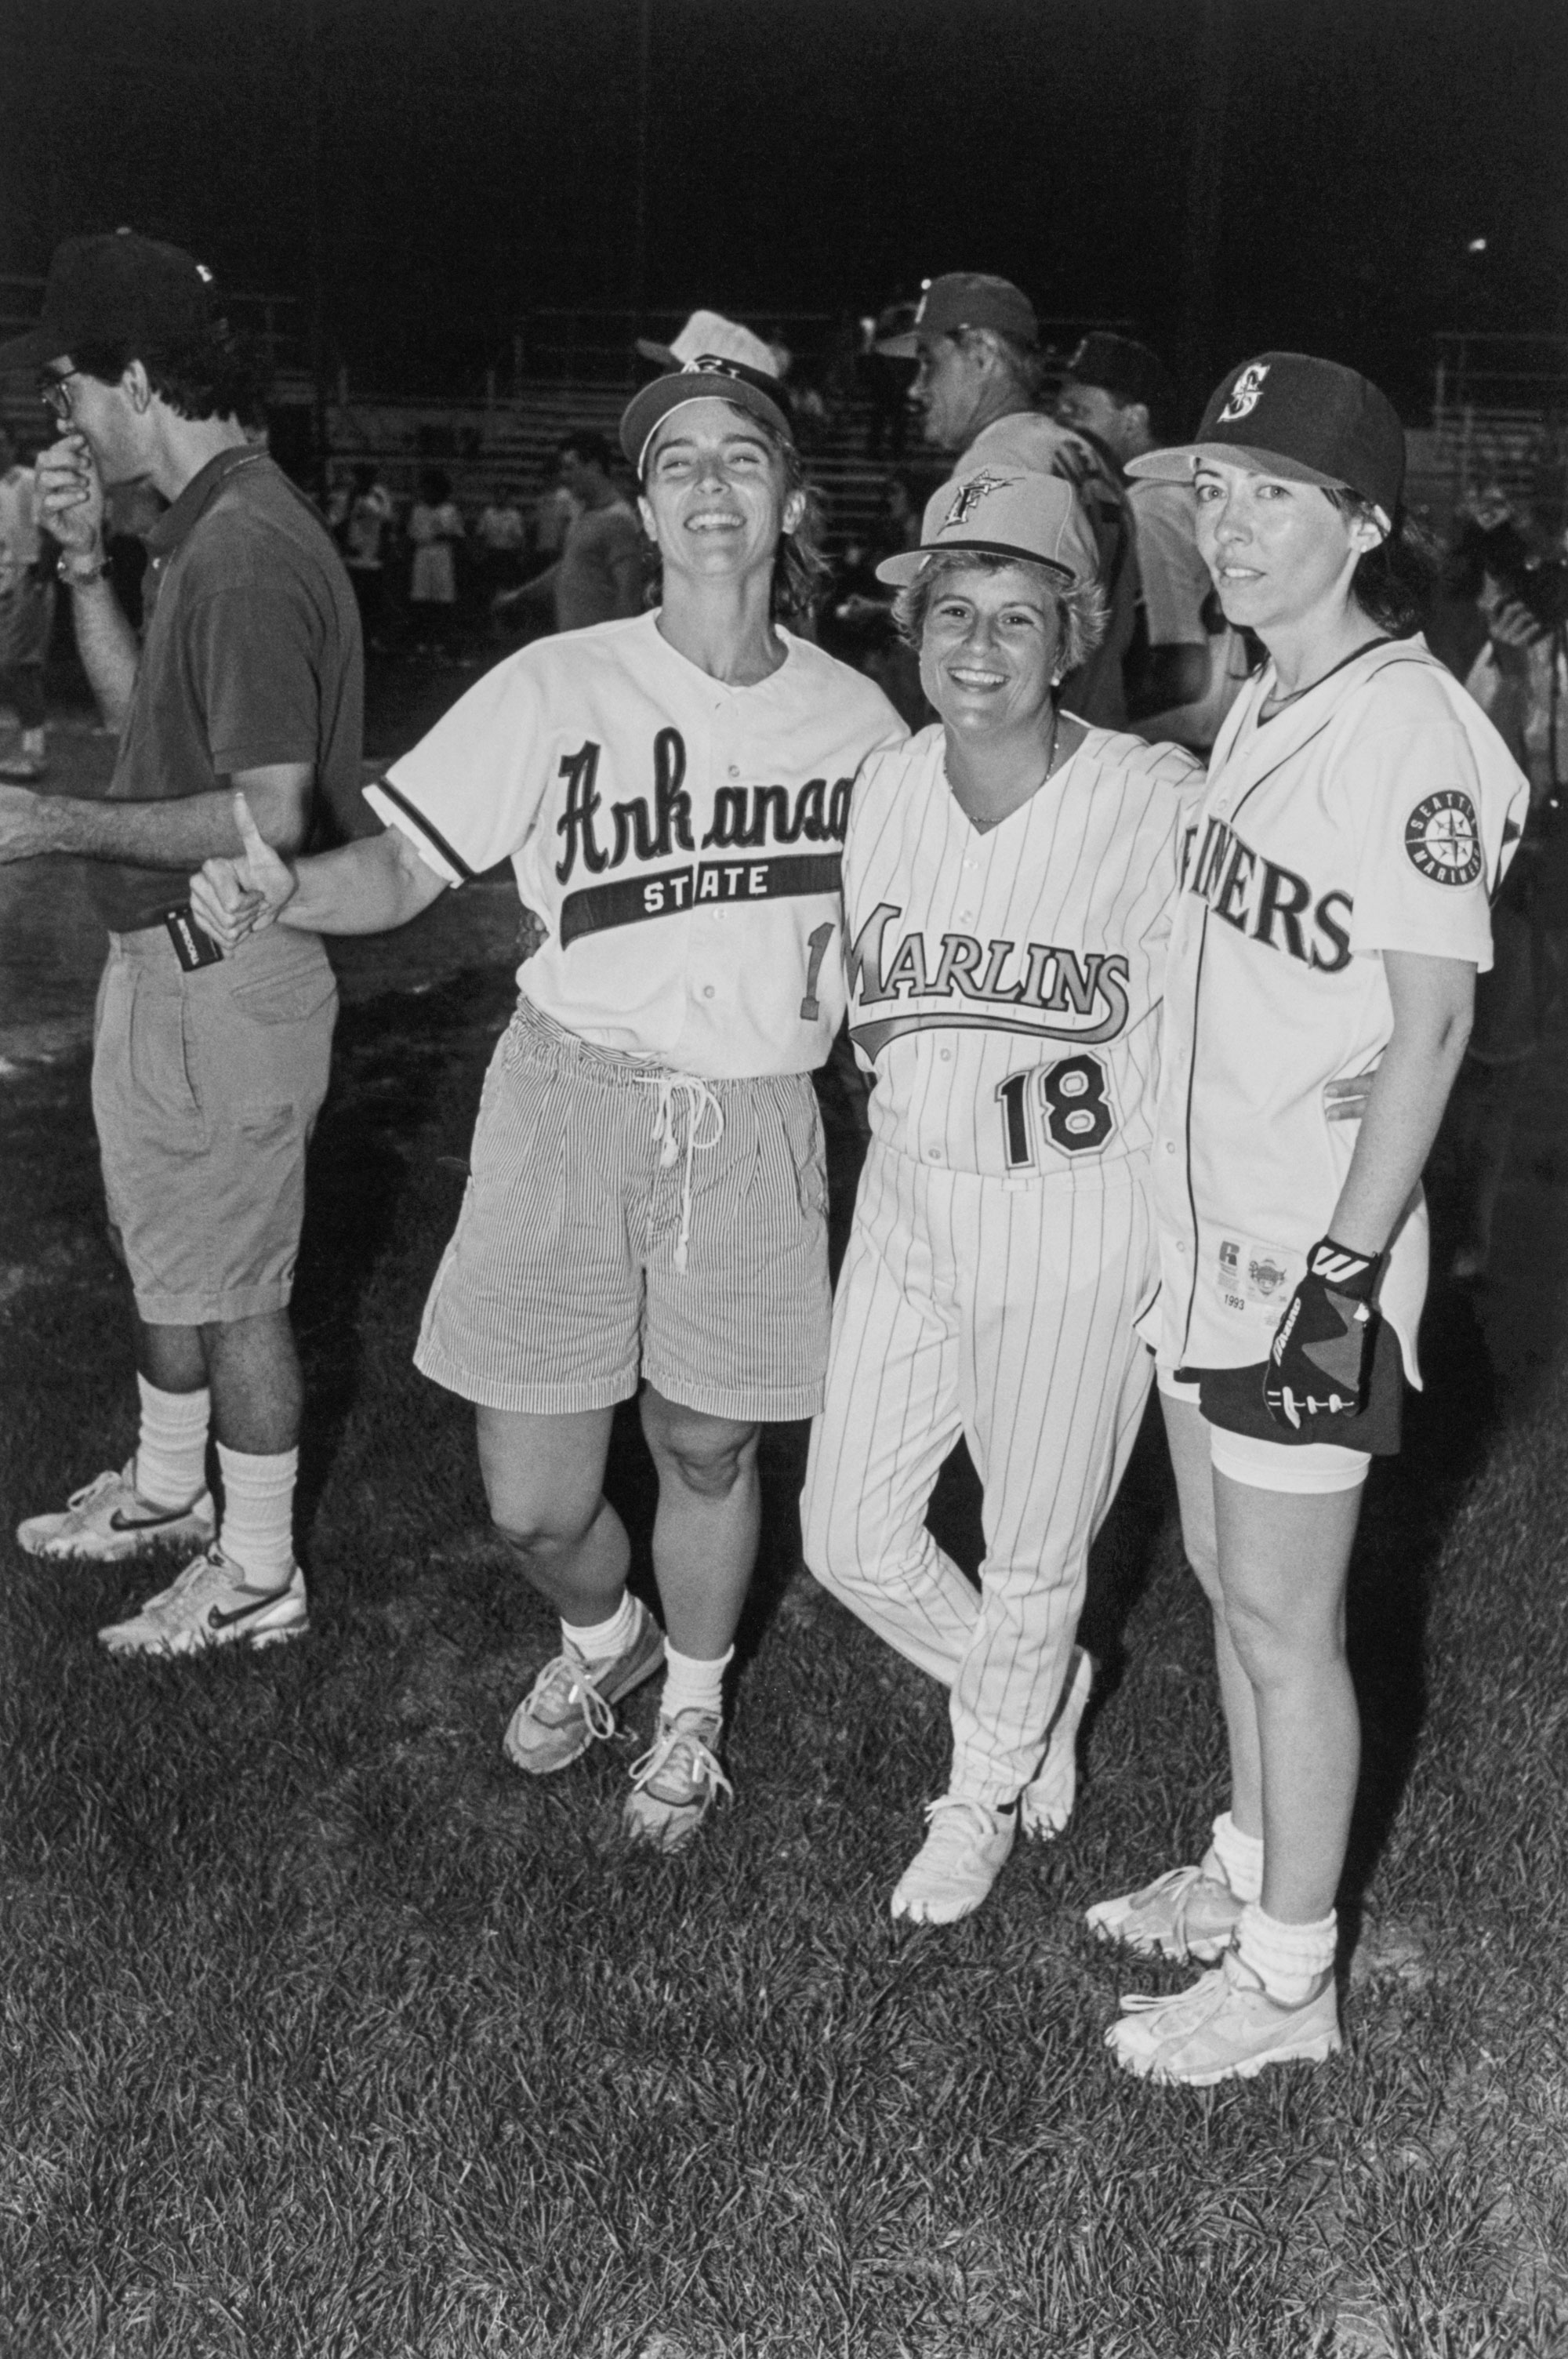 From left, Blanche Lambert Lincoln, Ileana Ros-Lehtinen and Maria Cantwell broke the gender barrier at the Congressional Baseball Game in 1993. (Chris Martin/CQ Roll Call file photo)